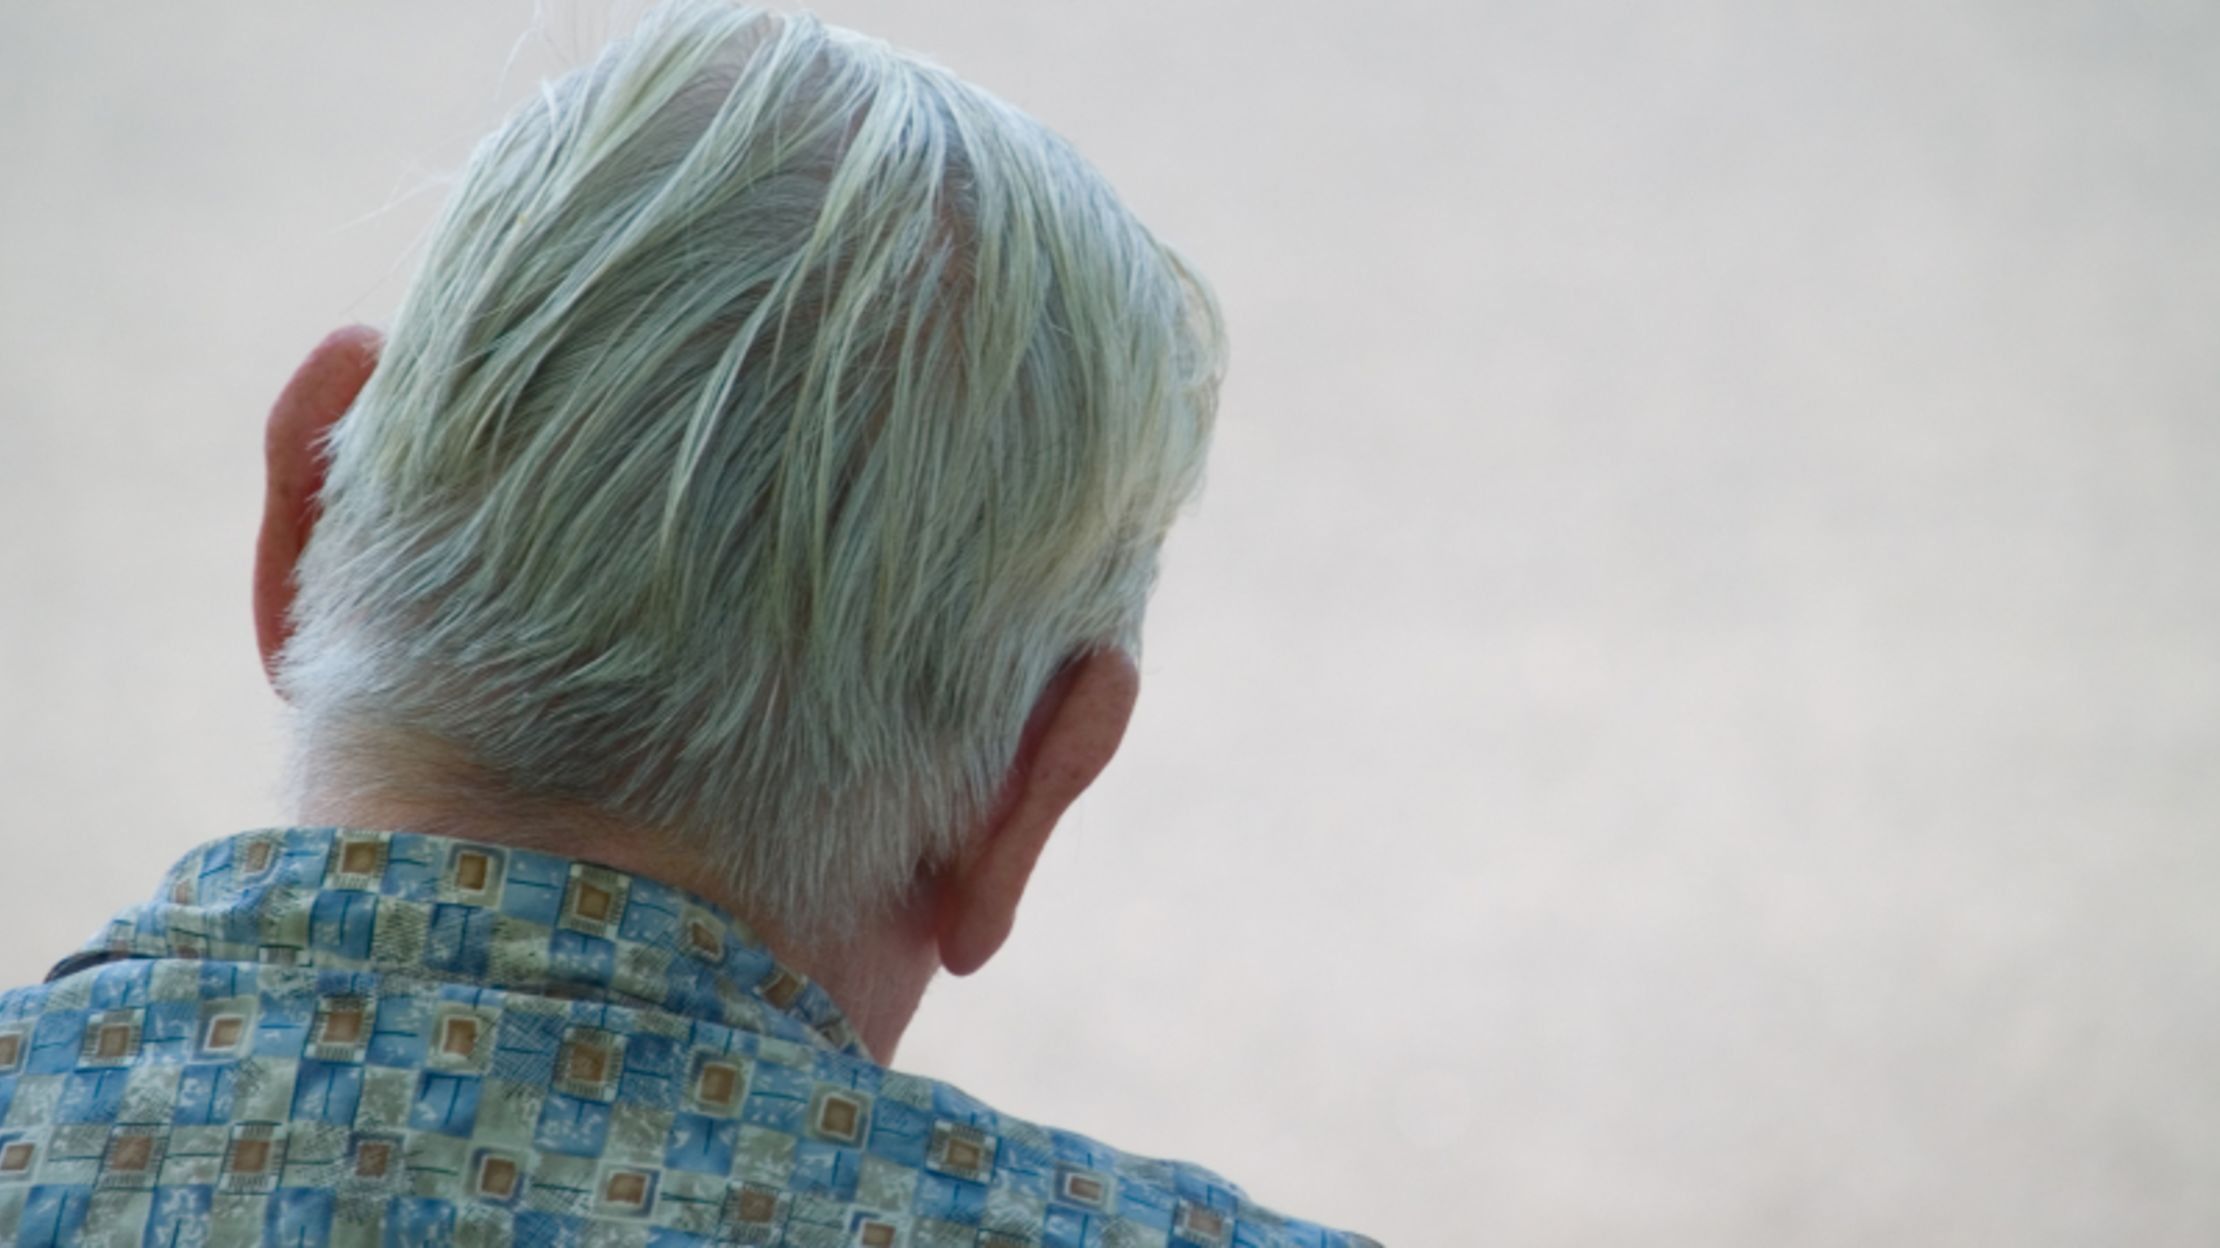 10 Head-Scratching Facts About Gray Hair | Mental Floss